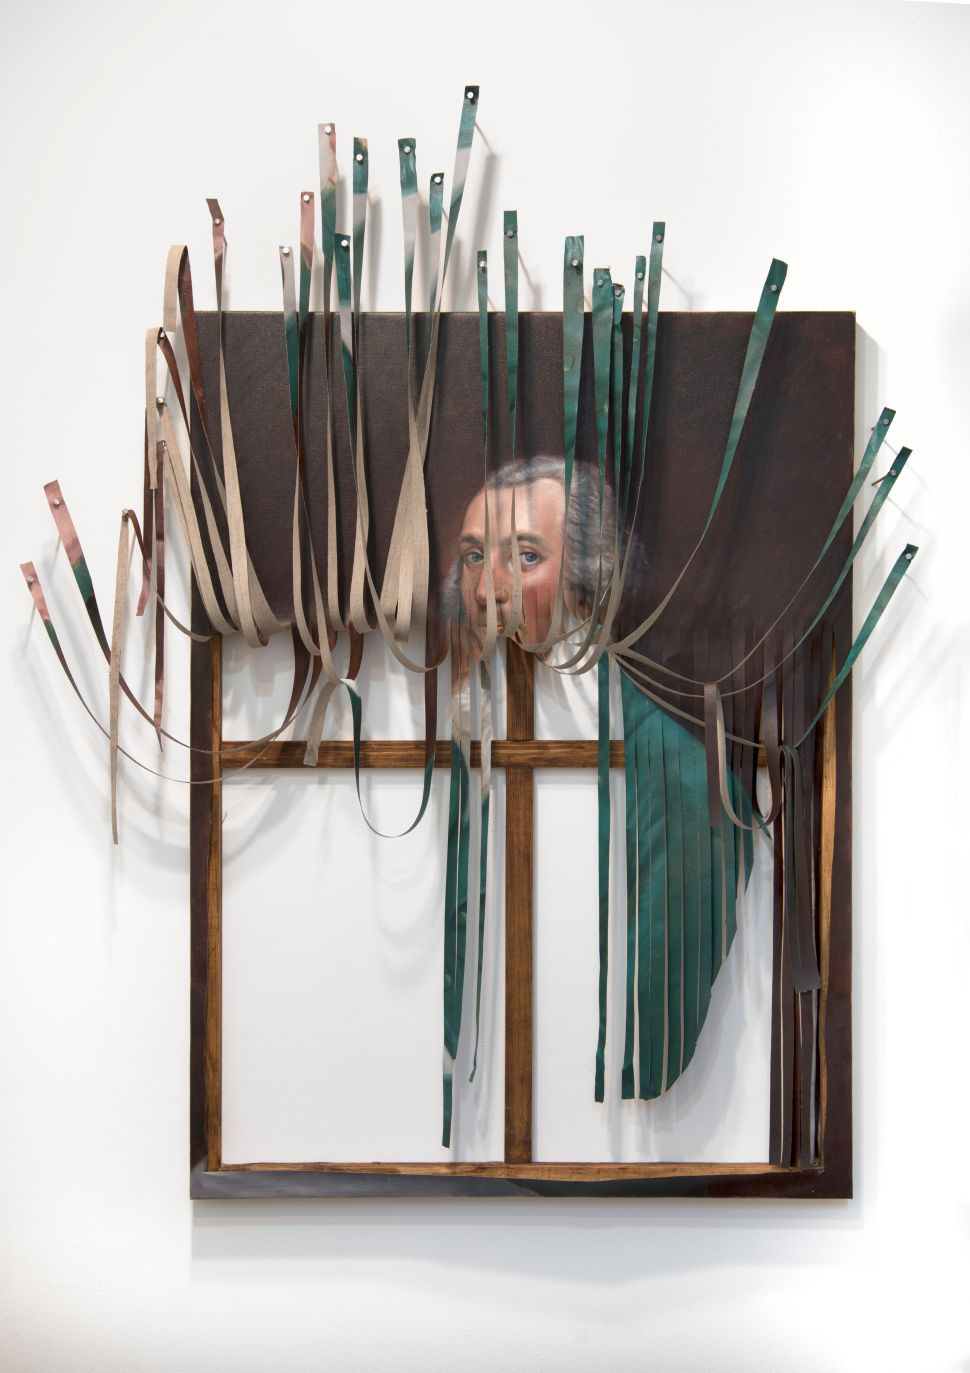 Titus Kaphar Talks Criminal Justice, His TIME Painting, and First Show at Jack Shainman